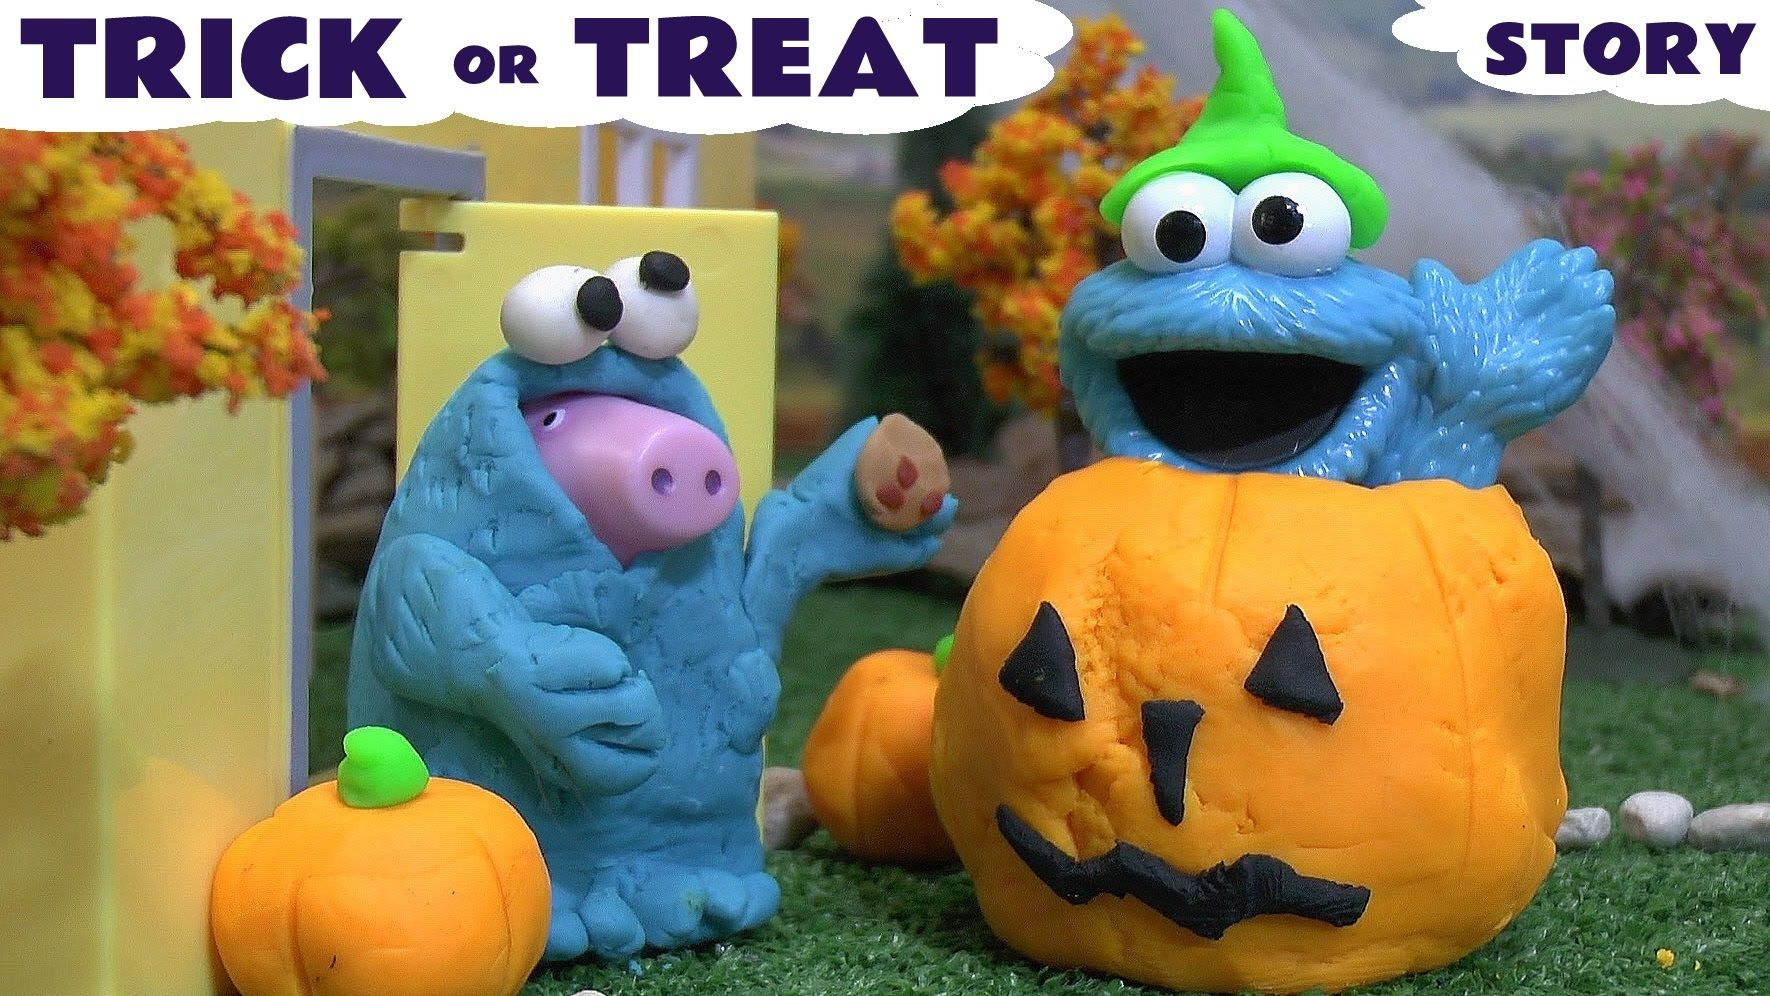 Halloween Trick Or Treat Play Doh Peppa Pig Halloween Costume Prank Stor... Peppa Pig get's disturbed by a Trick Or Treater, many times, but then get's shock at Peppa's Halloween Costume. Fun story. #halloween   #halloweencostume   #halloweencostumeideas   #trickortreat   #peppapig   #peppa   #pepa   #cookiemonster   #story